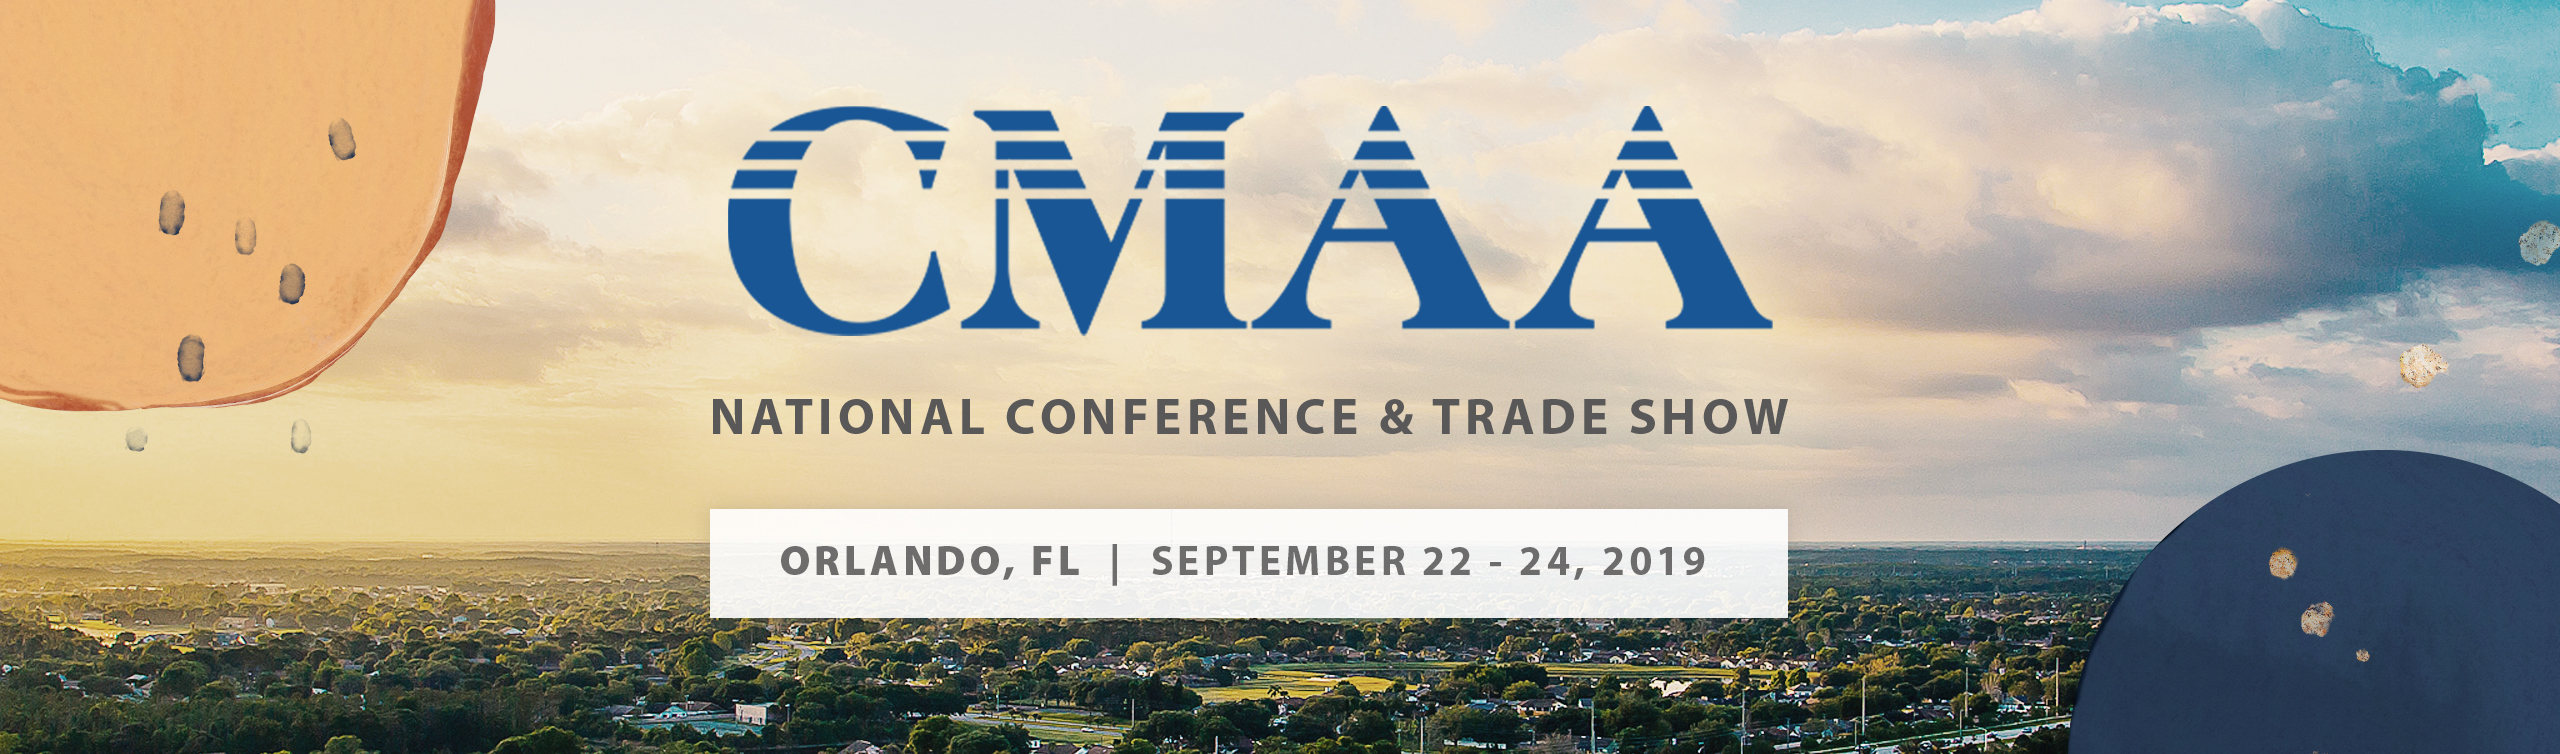 CMAA National Conference & Trade Show | September 22-24, 2019 | Orlando, FL